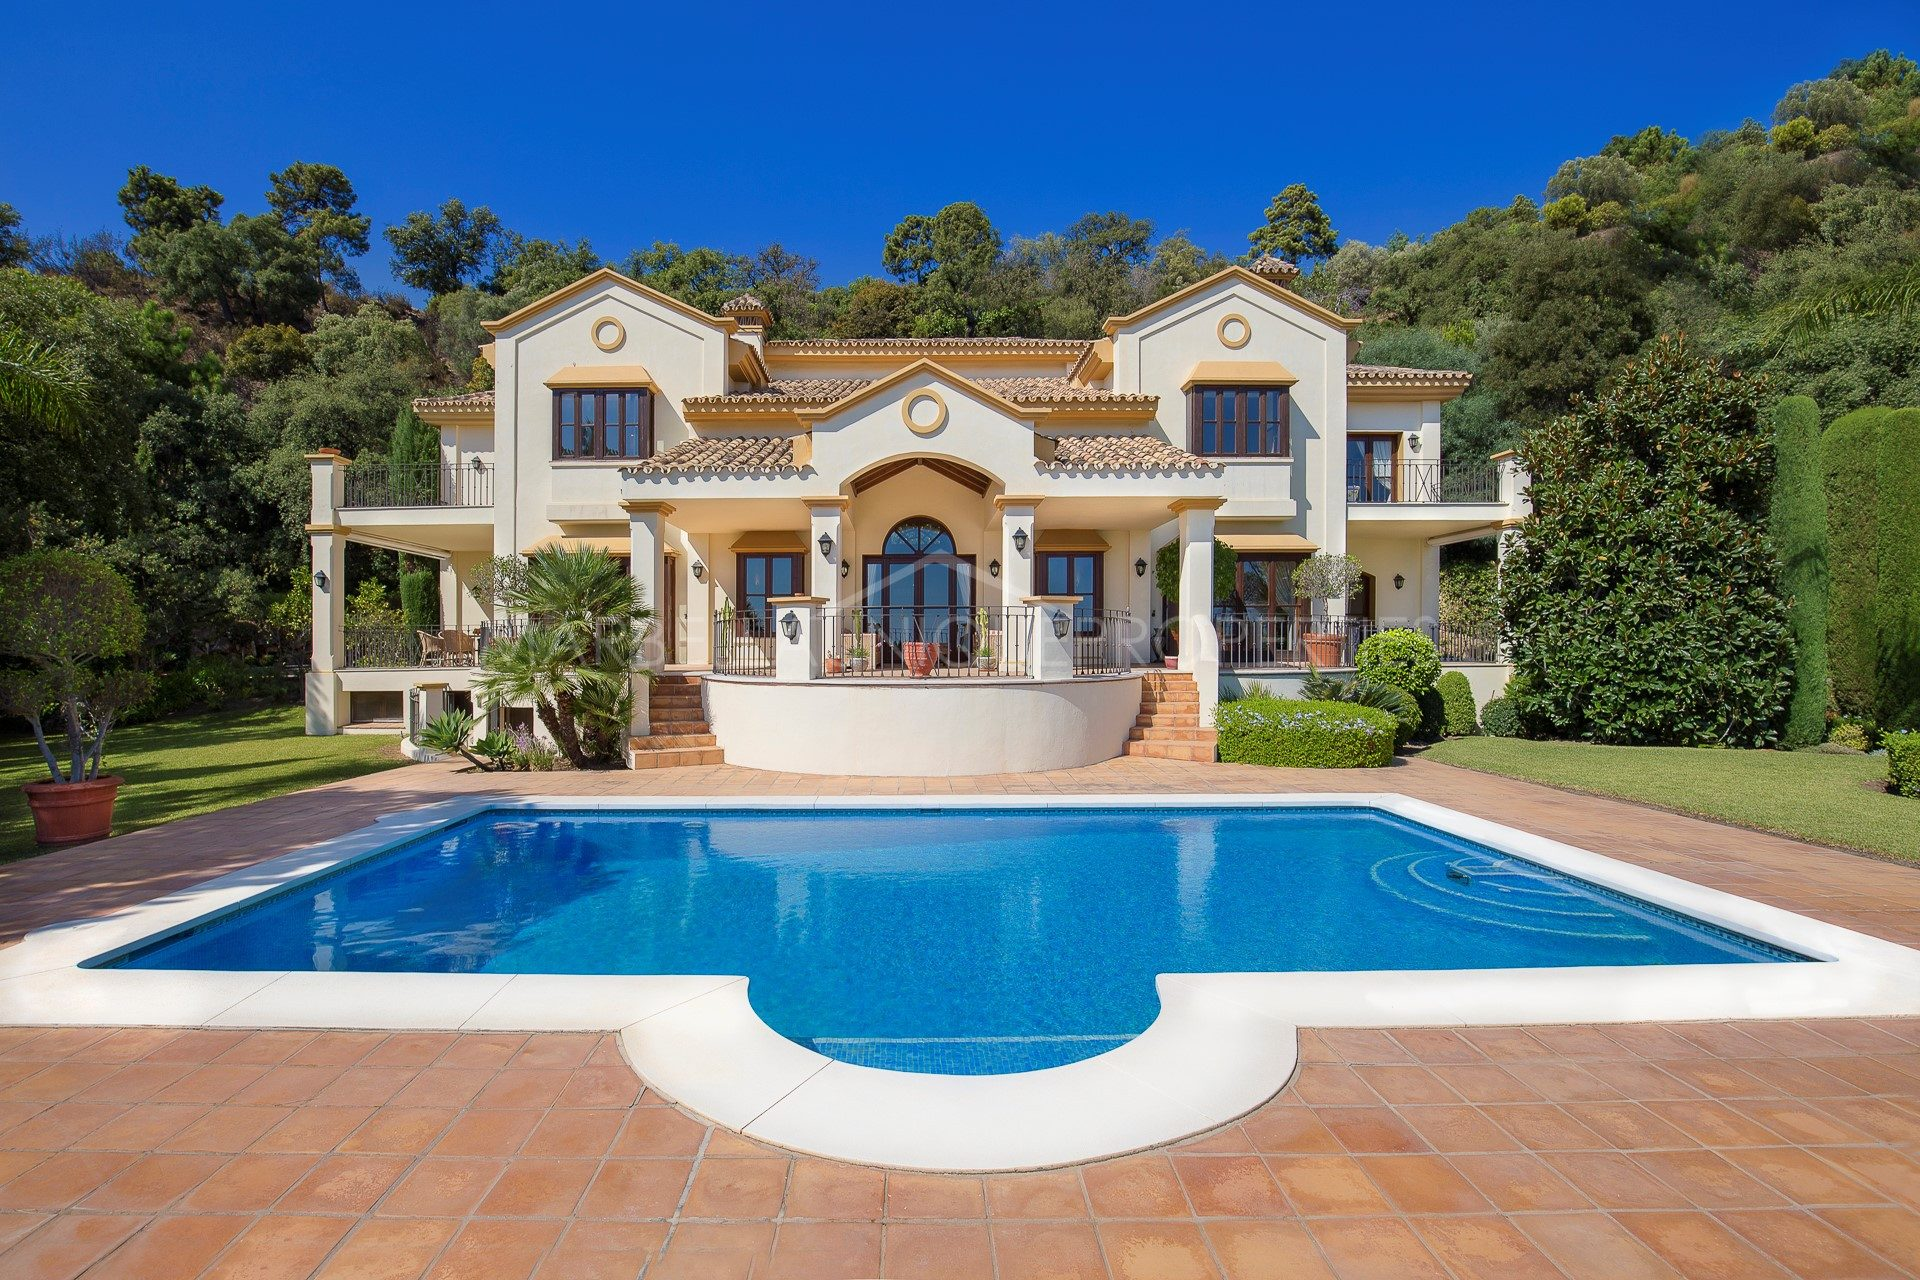 The Best Properties in La Zagaleta - Marbella Unique Properties - A charming Andalusian style La Zagaleta property with 4 bedroom, 2.950.000€